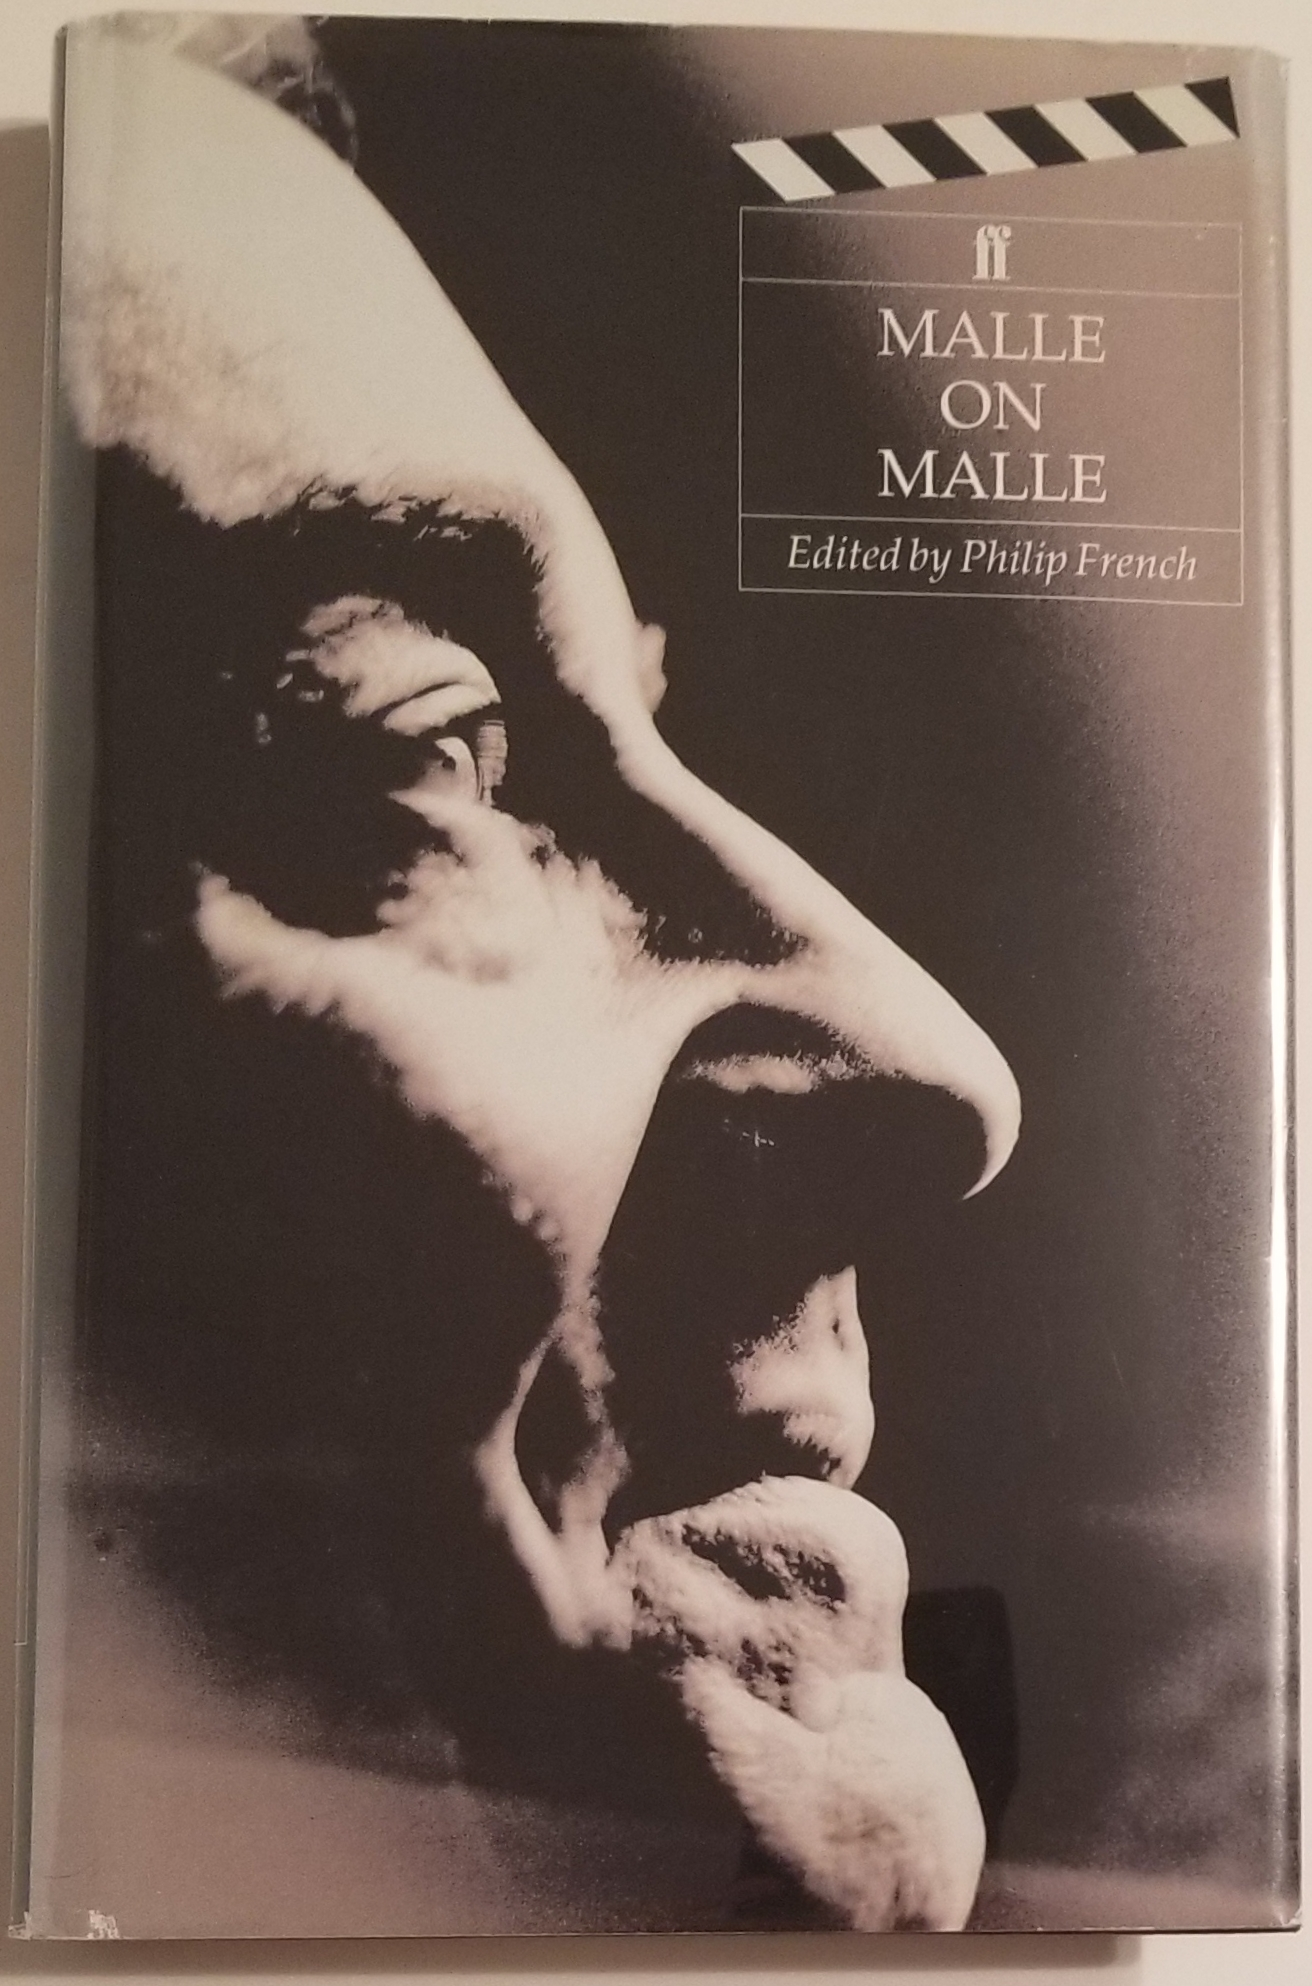 MALLE ON MALLE Edited by Philip French. Louis Malle.